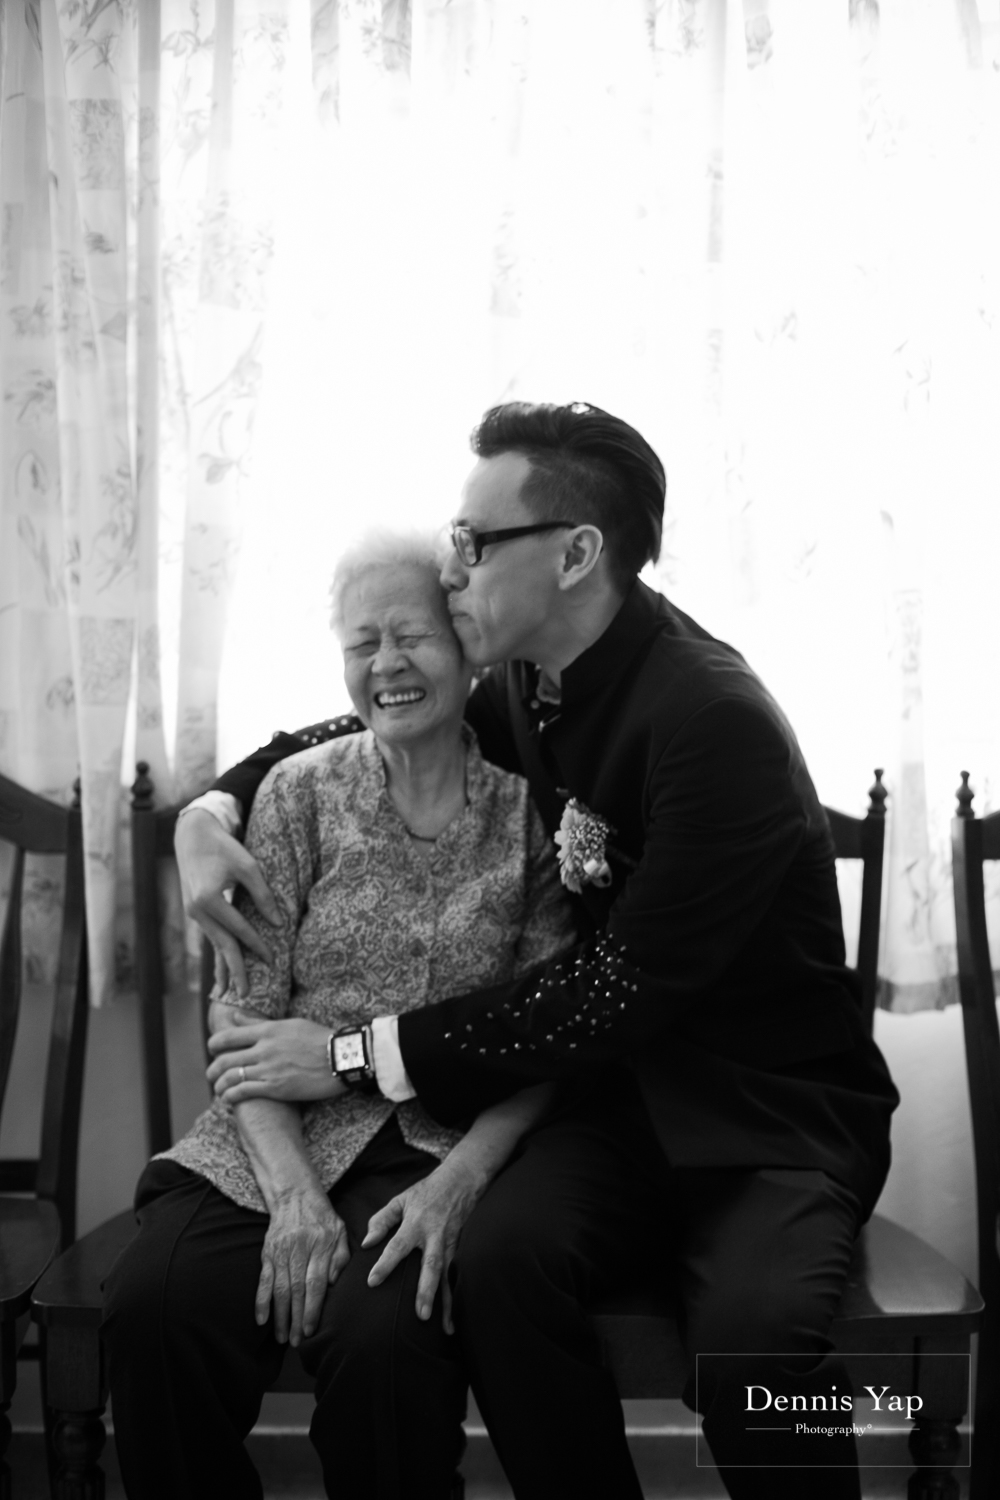 jake yu hwan melaka wedding gate crash by dennis yap photography elderly moments and emotions hugs-13.jpg